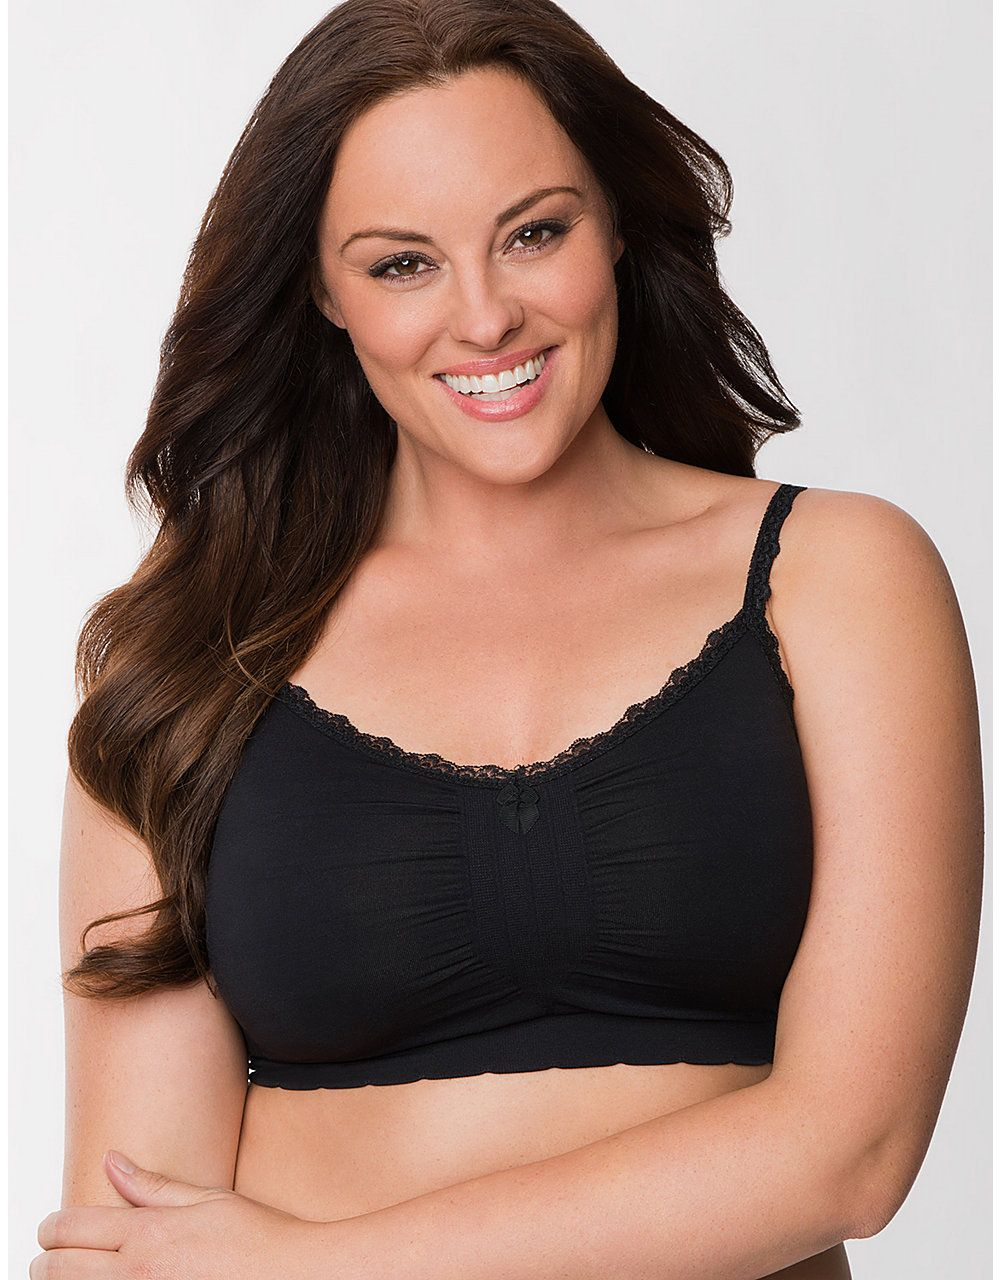 d2da1da83fb99 No wire seamless sleep bra by Cacique. This would be perfect for trips when  I don t want to walk around the hotel without a bra on.